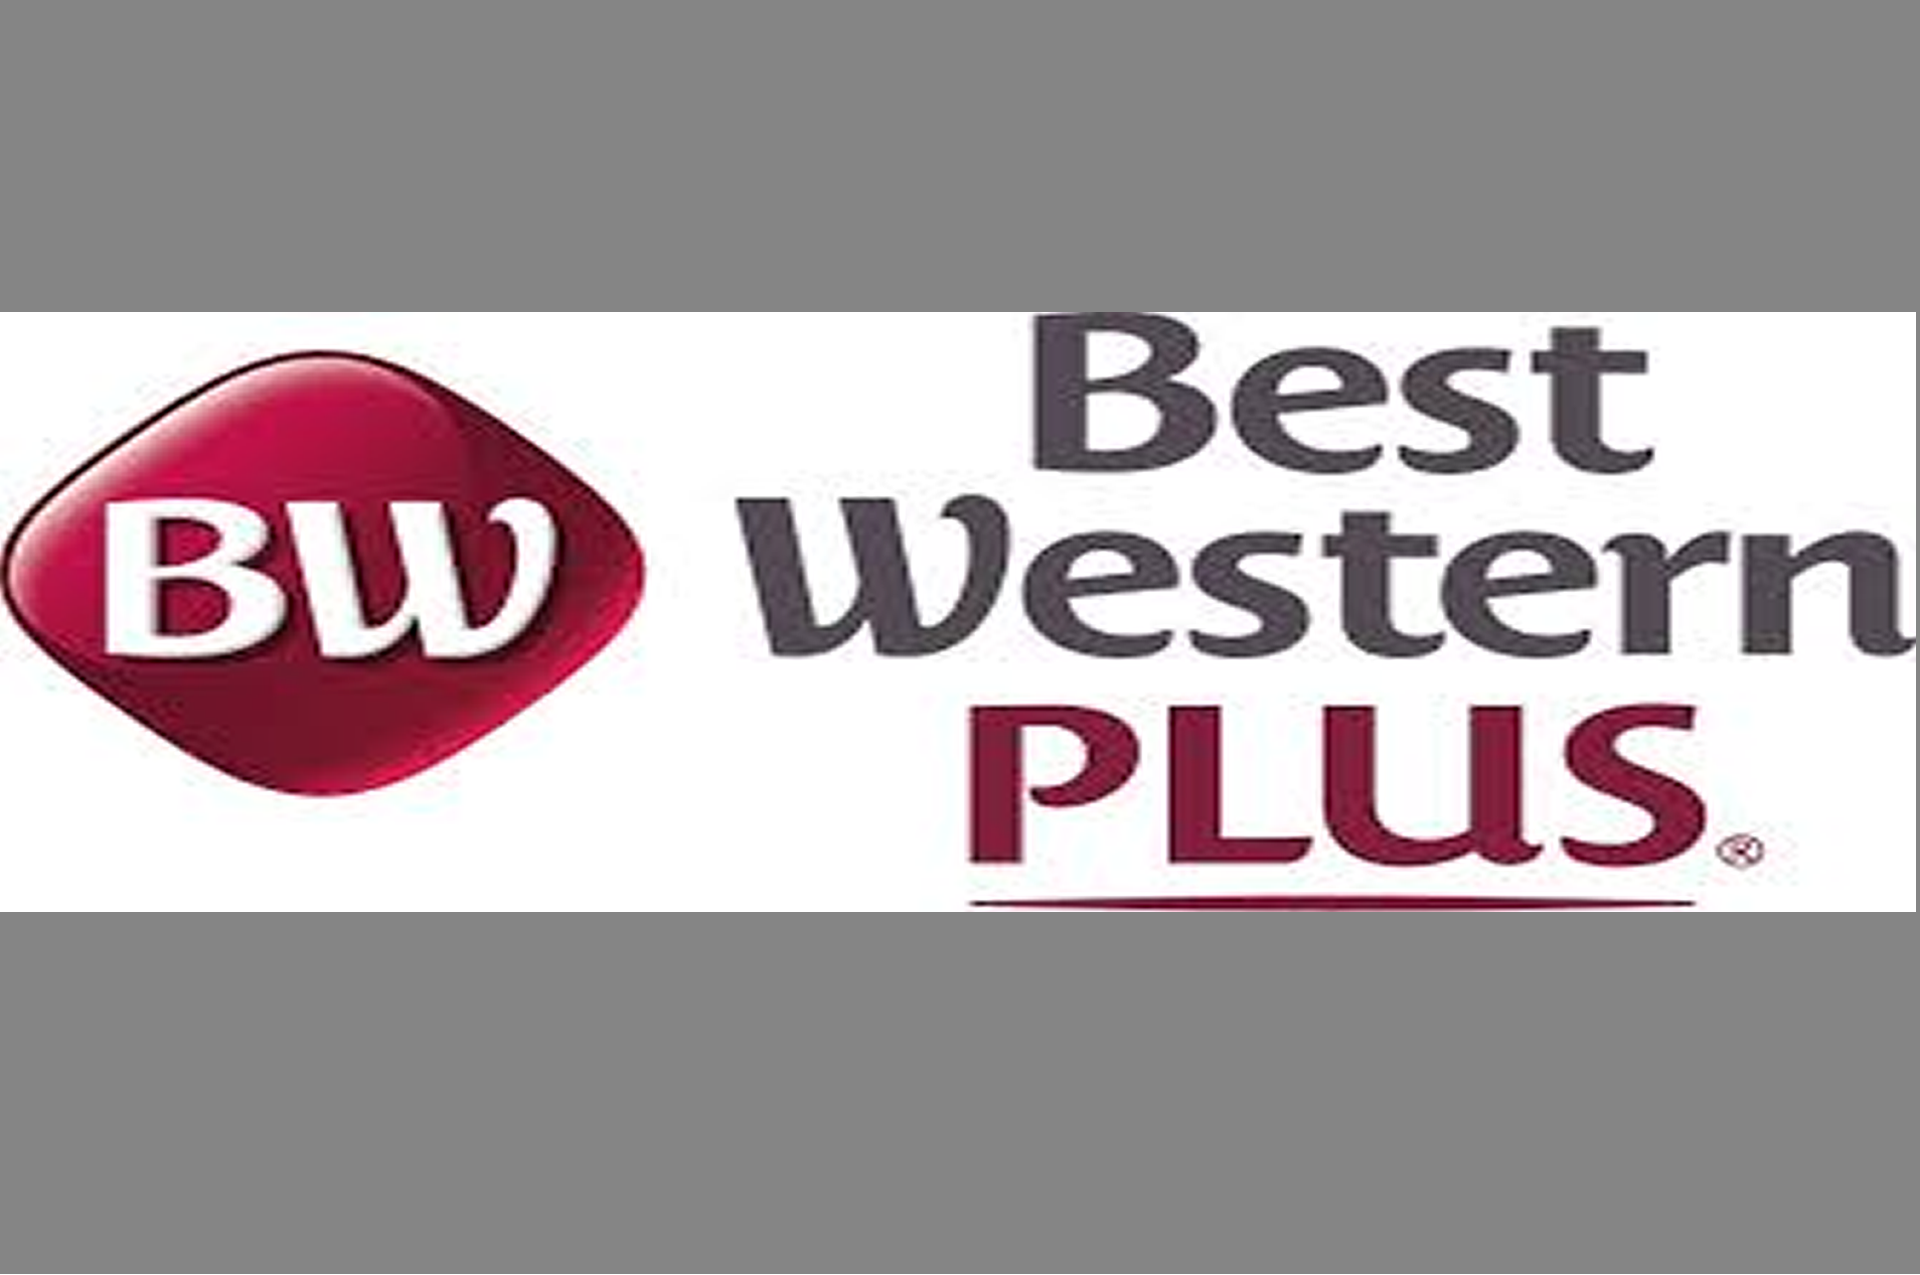 Best Western Plus Hotel For Sale [GTA – West]